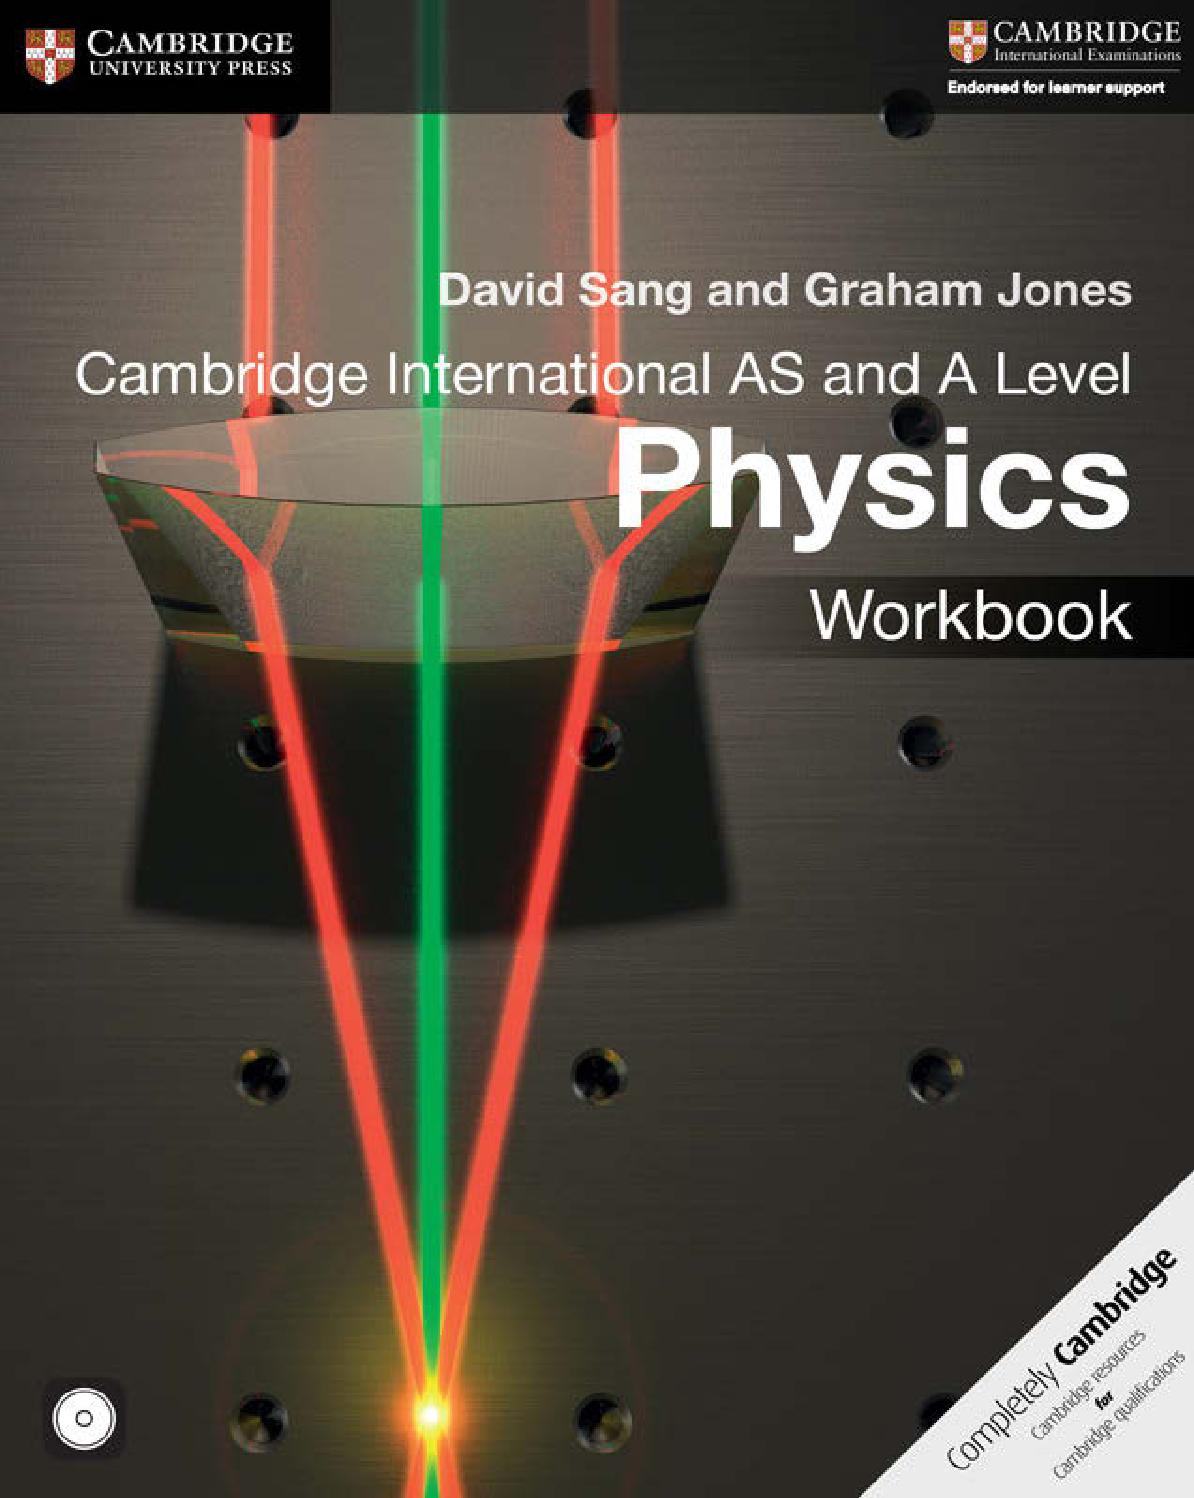 Preview Cambridge International As And A Level Physics Workbook By School General College Free Body Force Diagrams University Press Education Issuu